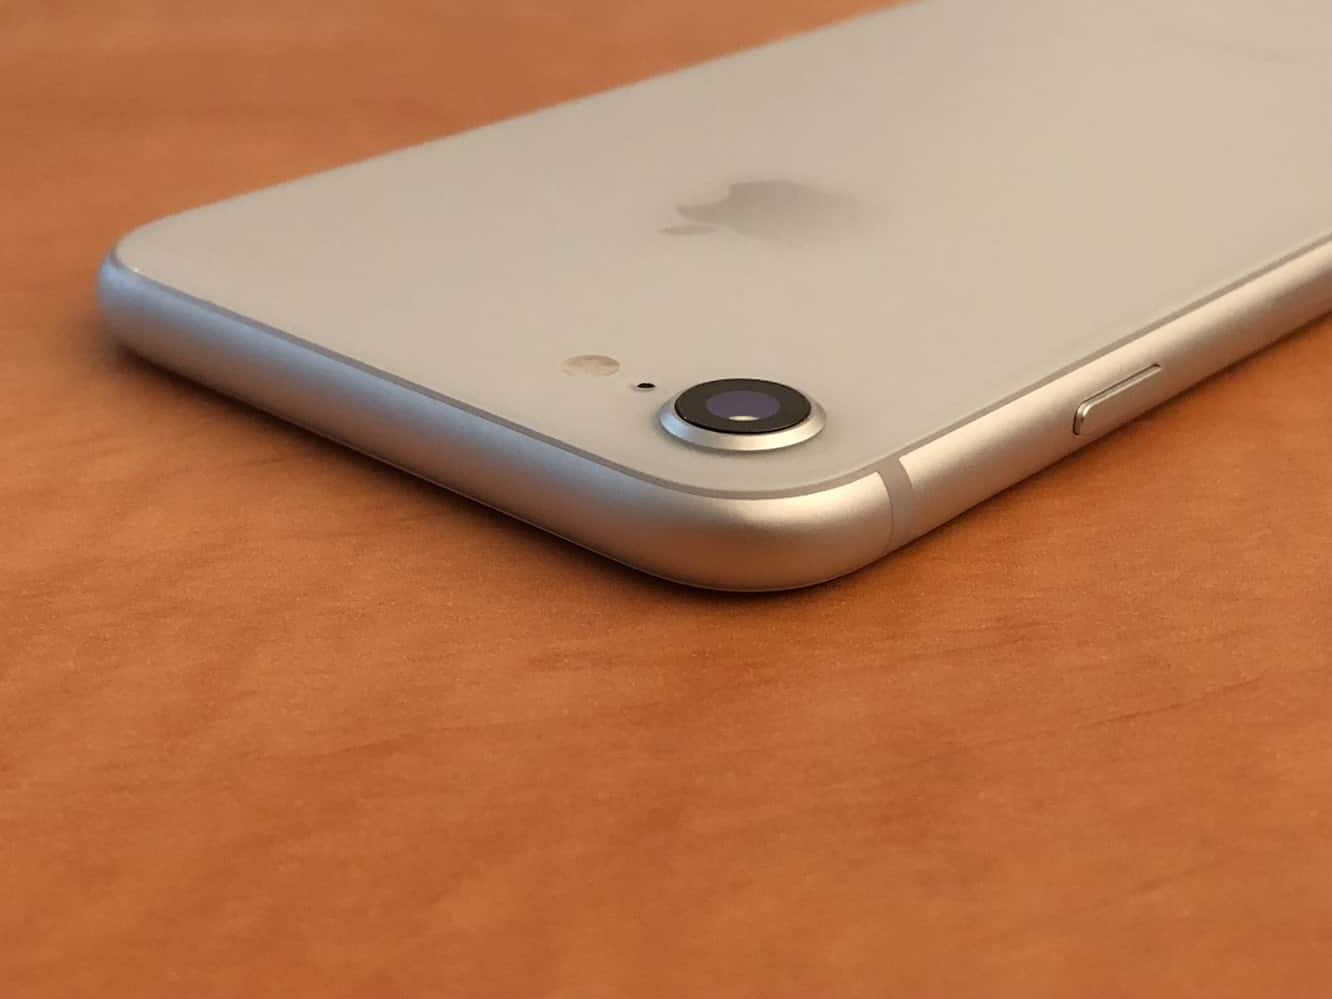 Review: iPhone 8 and iPhone 8 Plus